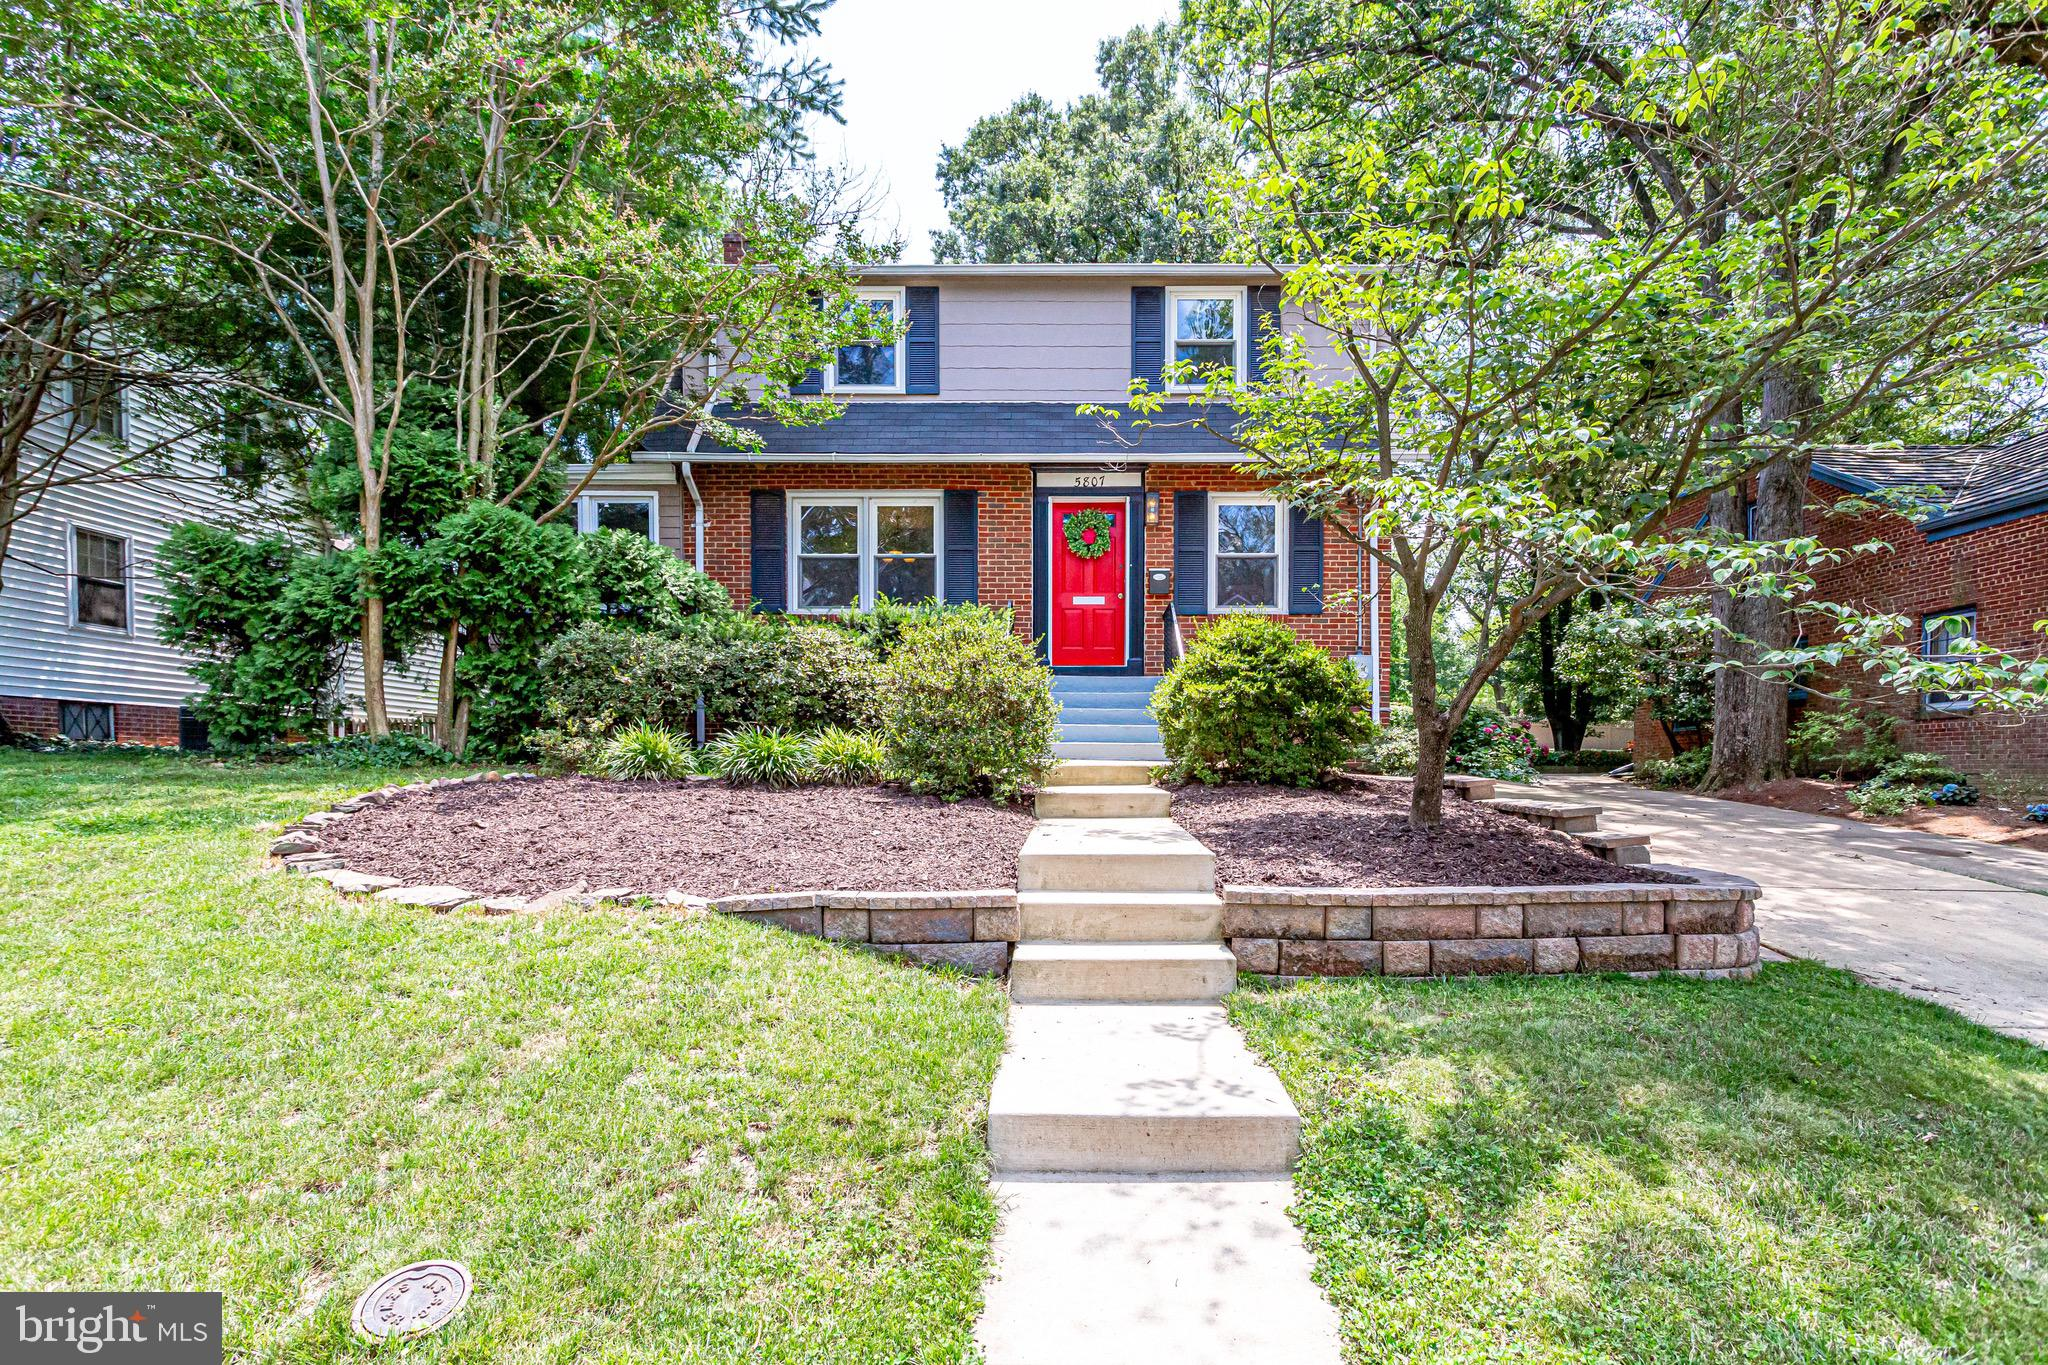 5807 CARLYLE STREET, CHEVERLY, MD 20785